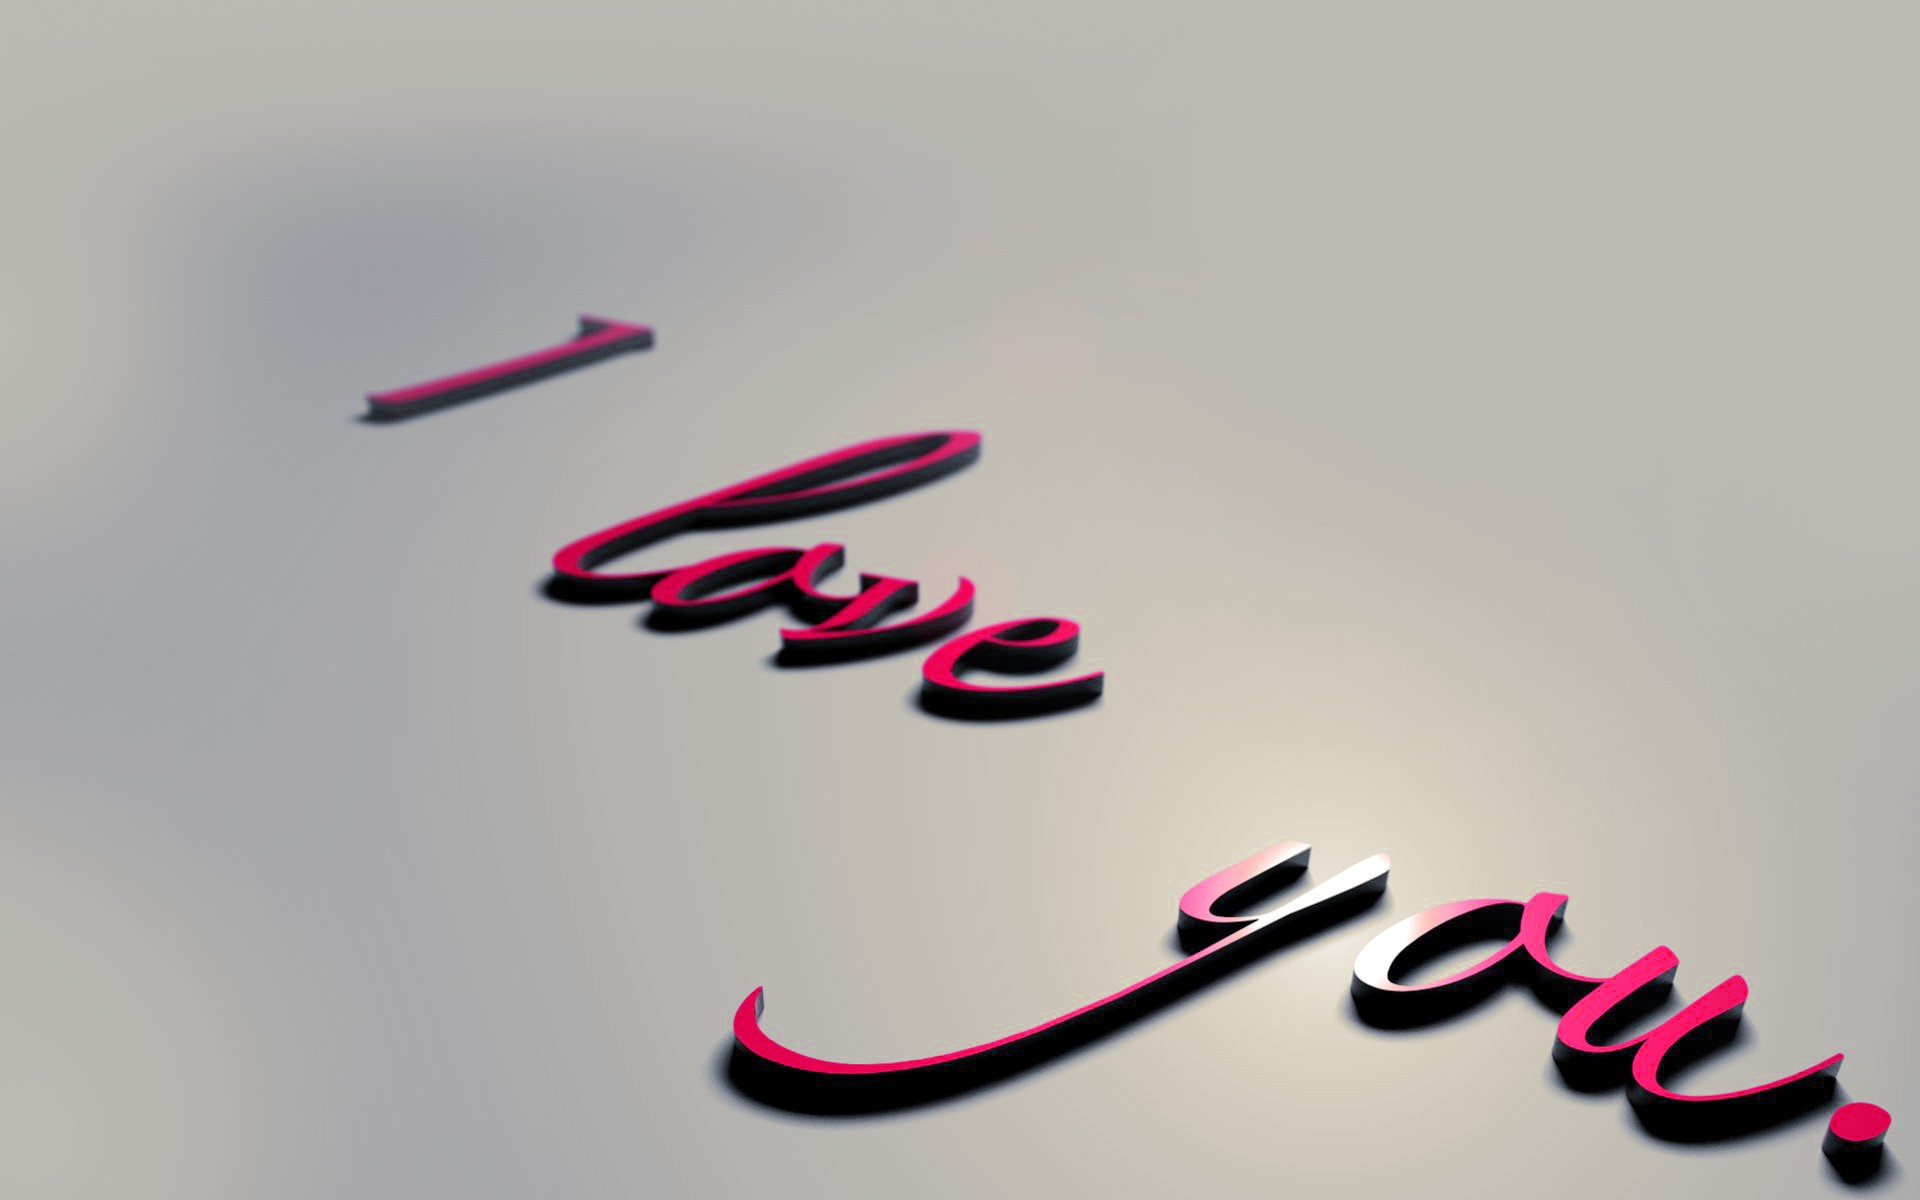 3D Love Letters 14 Hd Wallpaper - Hdlovewall.com